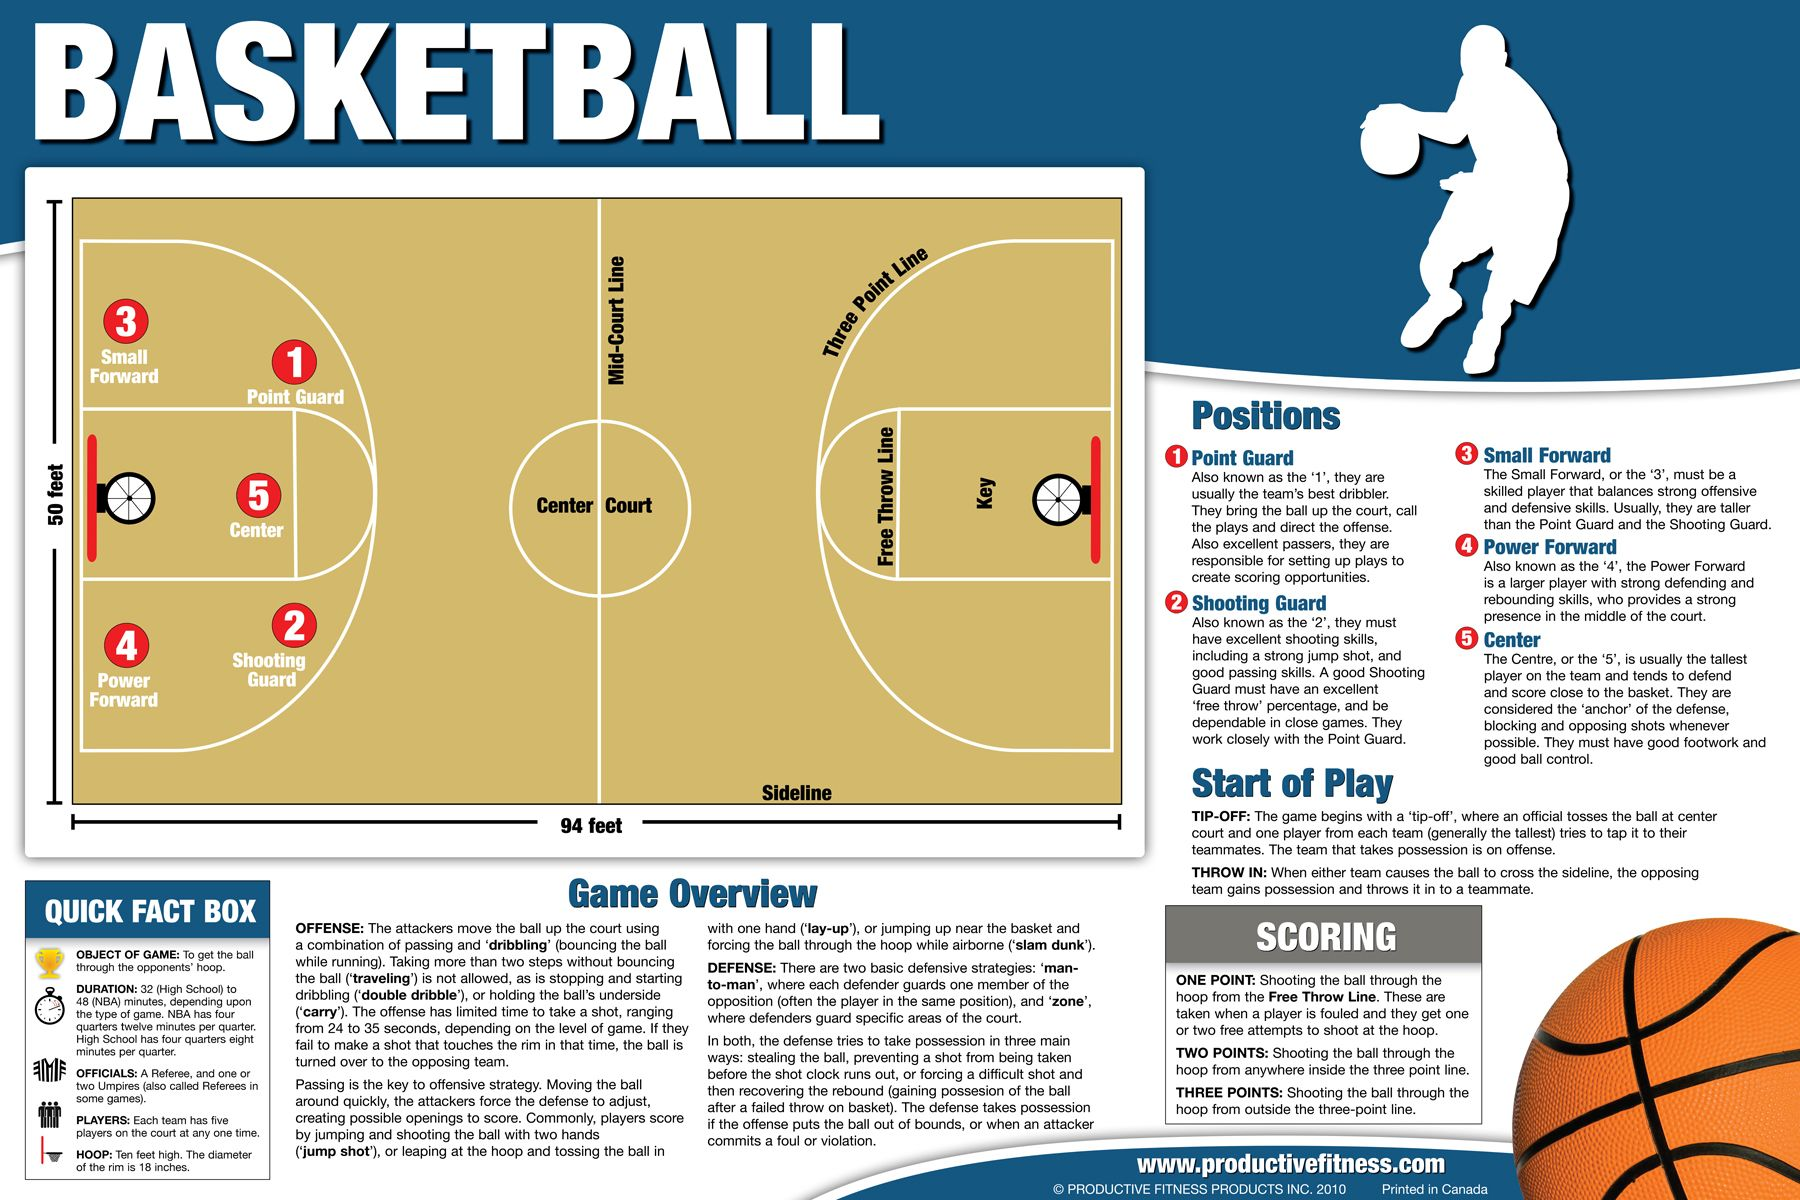 19.95 Our basketball overview poster is perfect to gain